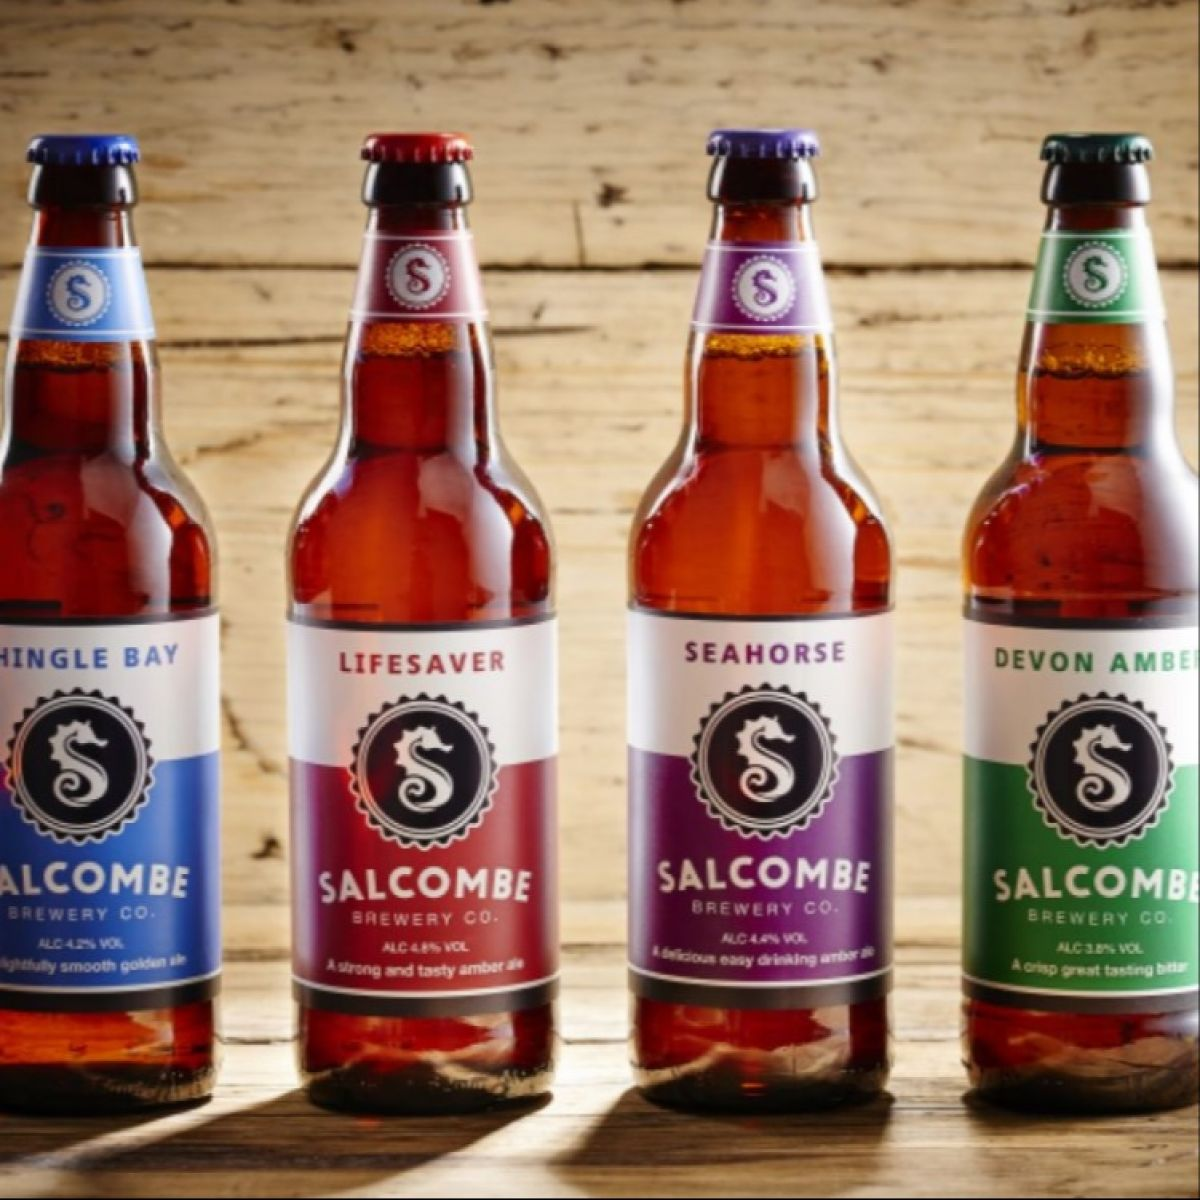 Salcombe Brewery